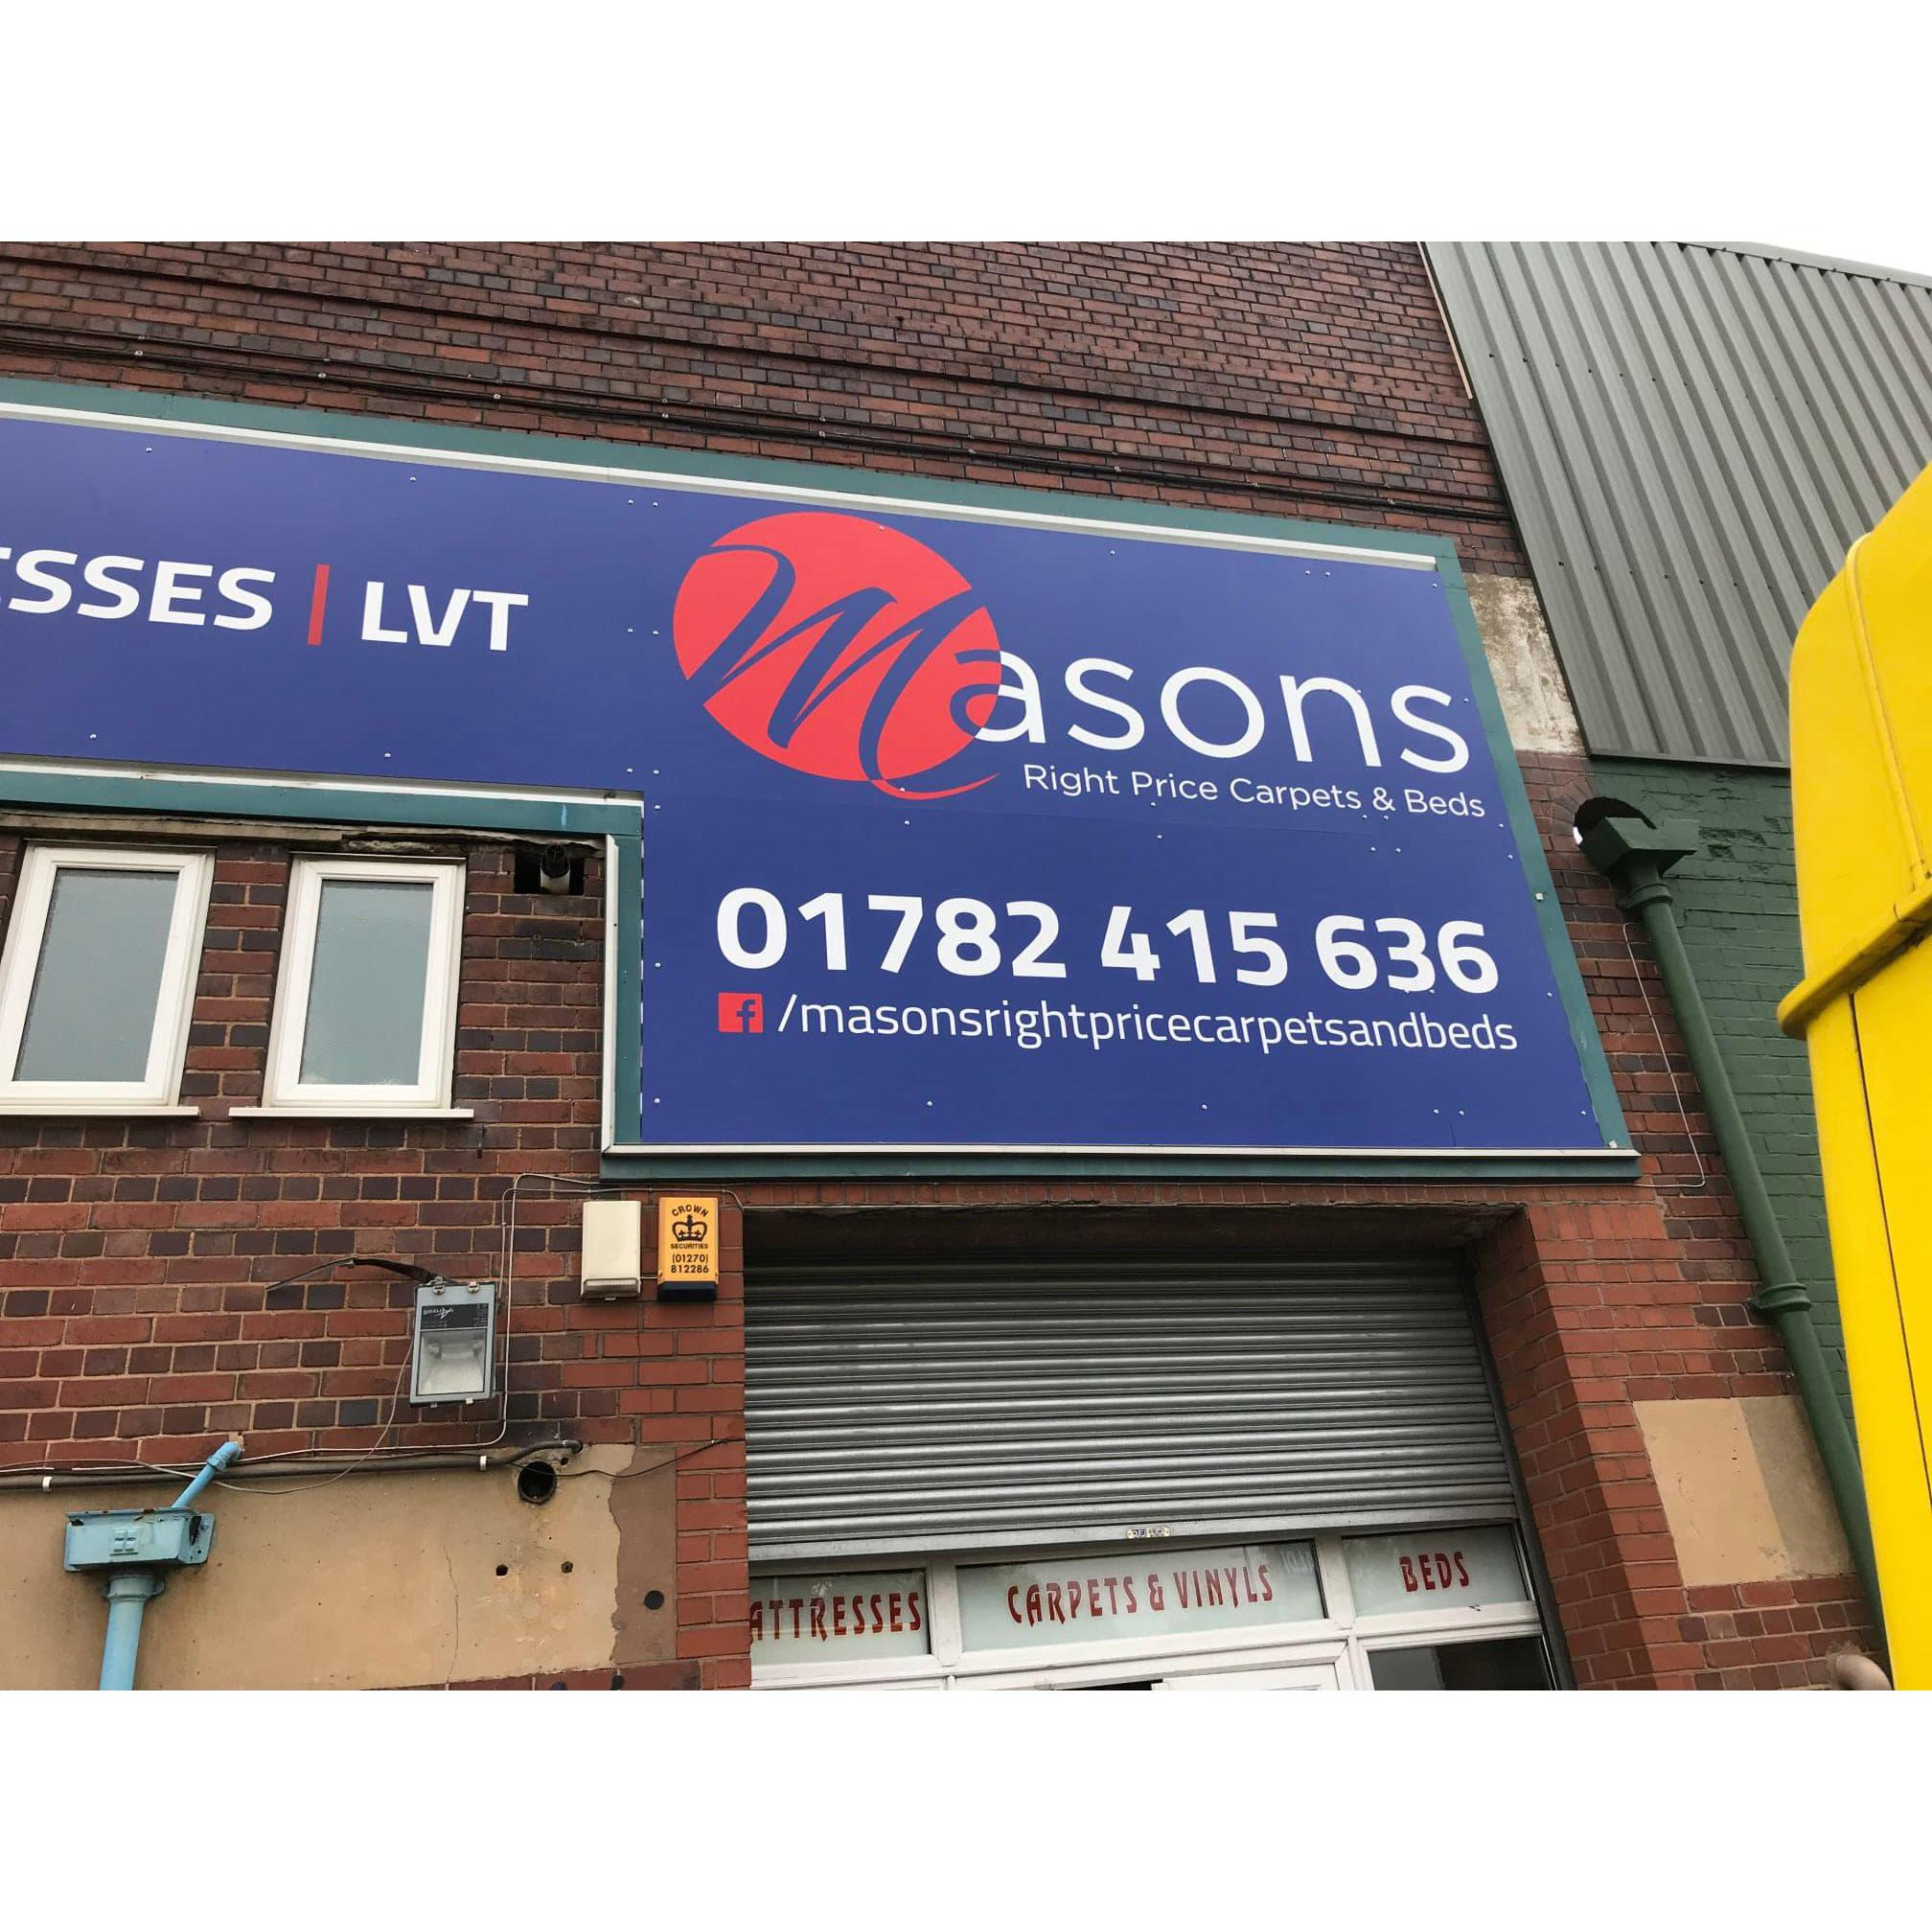 Masons Right Price Carpets & Beds Logo